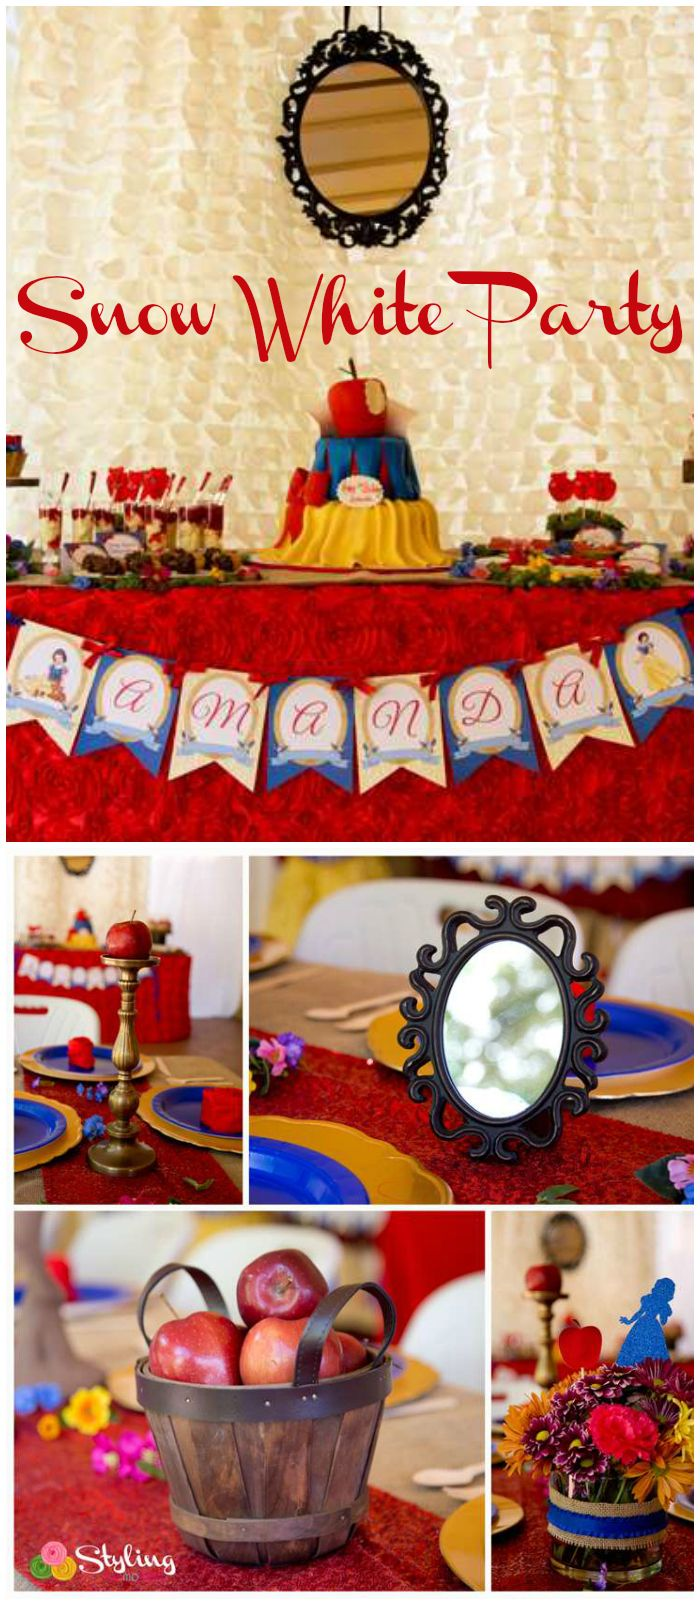 A rustic glam Snow White girl birthday party with wood platters, burlap, little birds, flowers, and tree vines! See more party planning ideas at CatchMyParty.com!